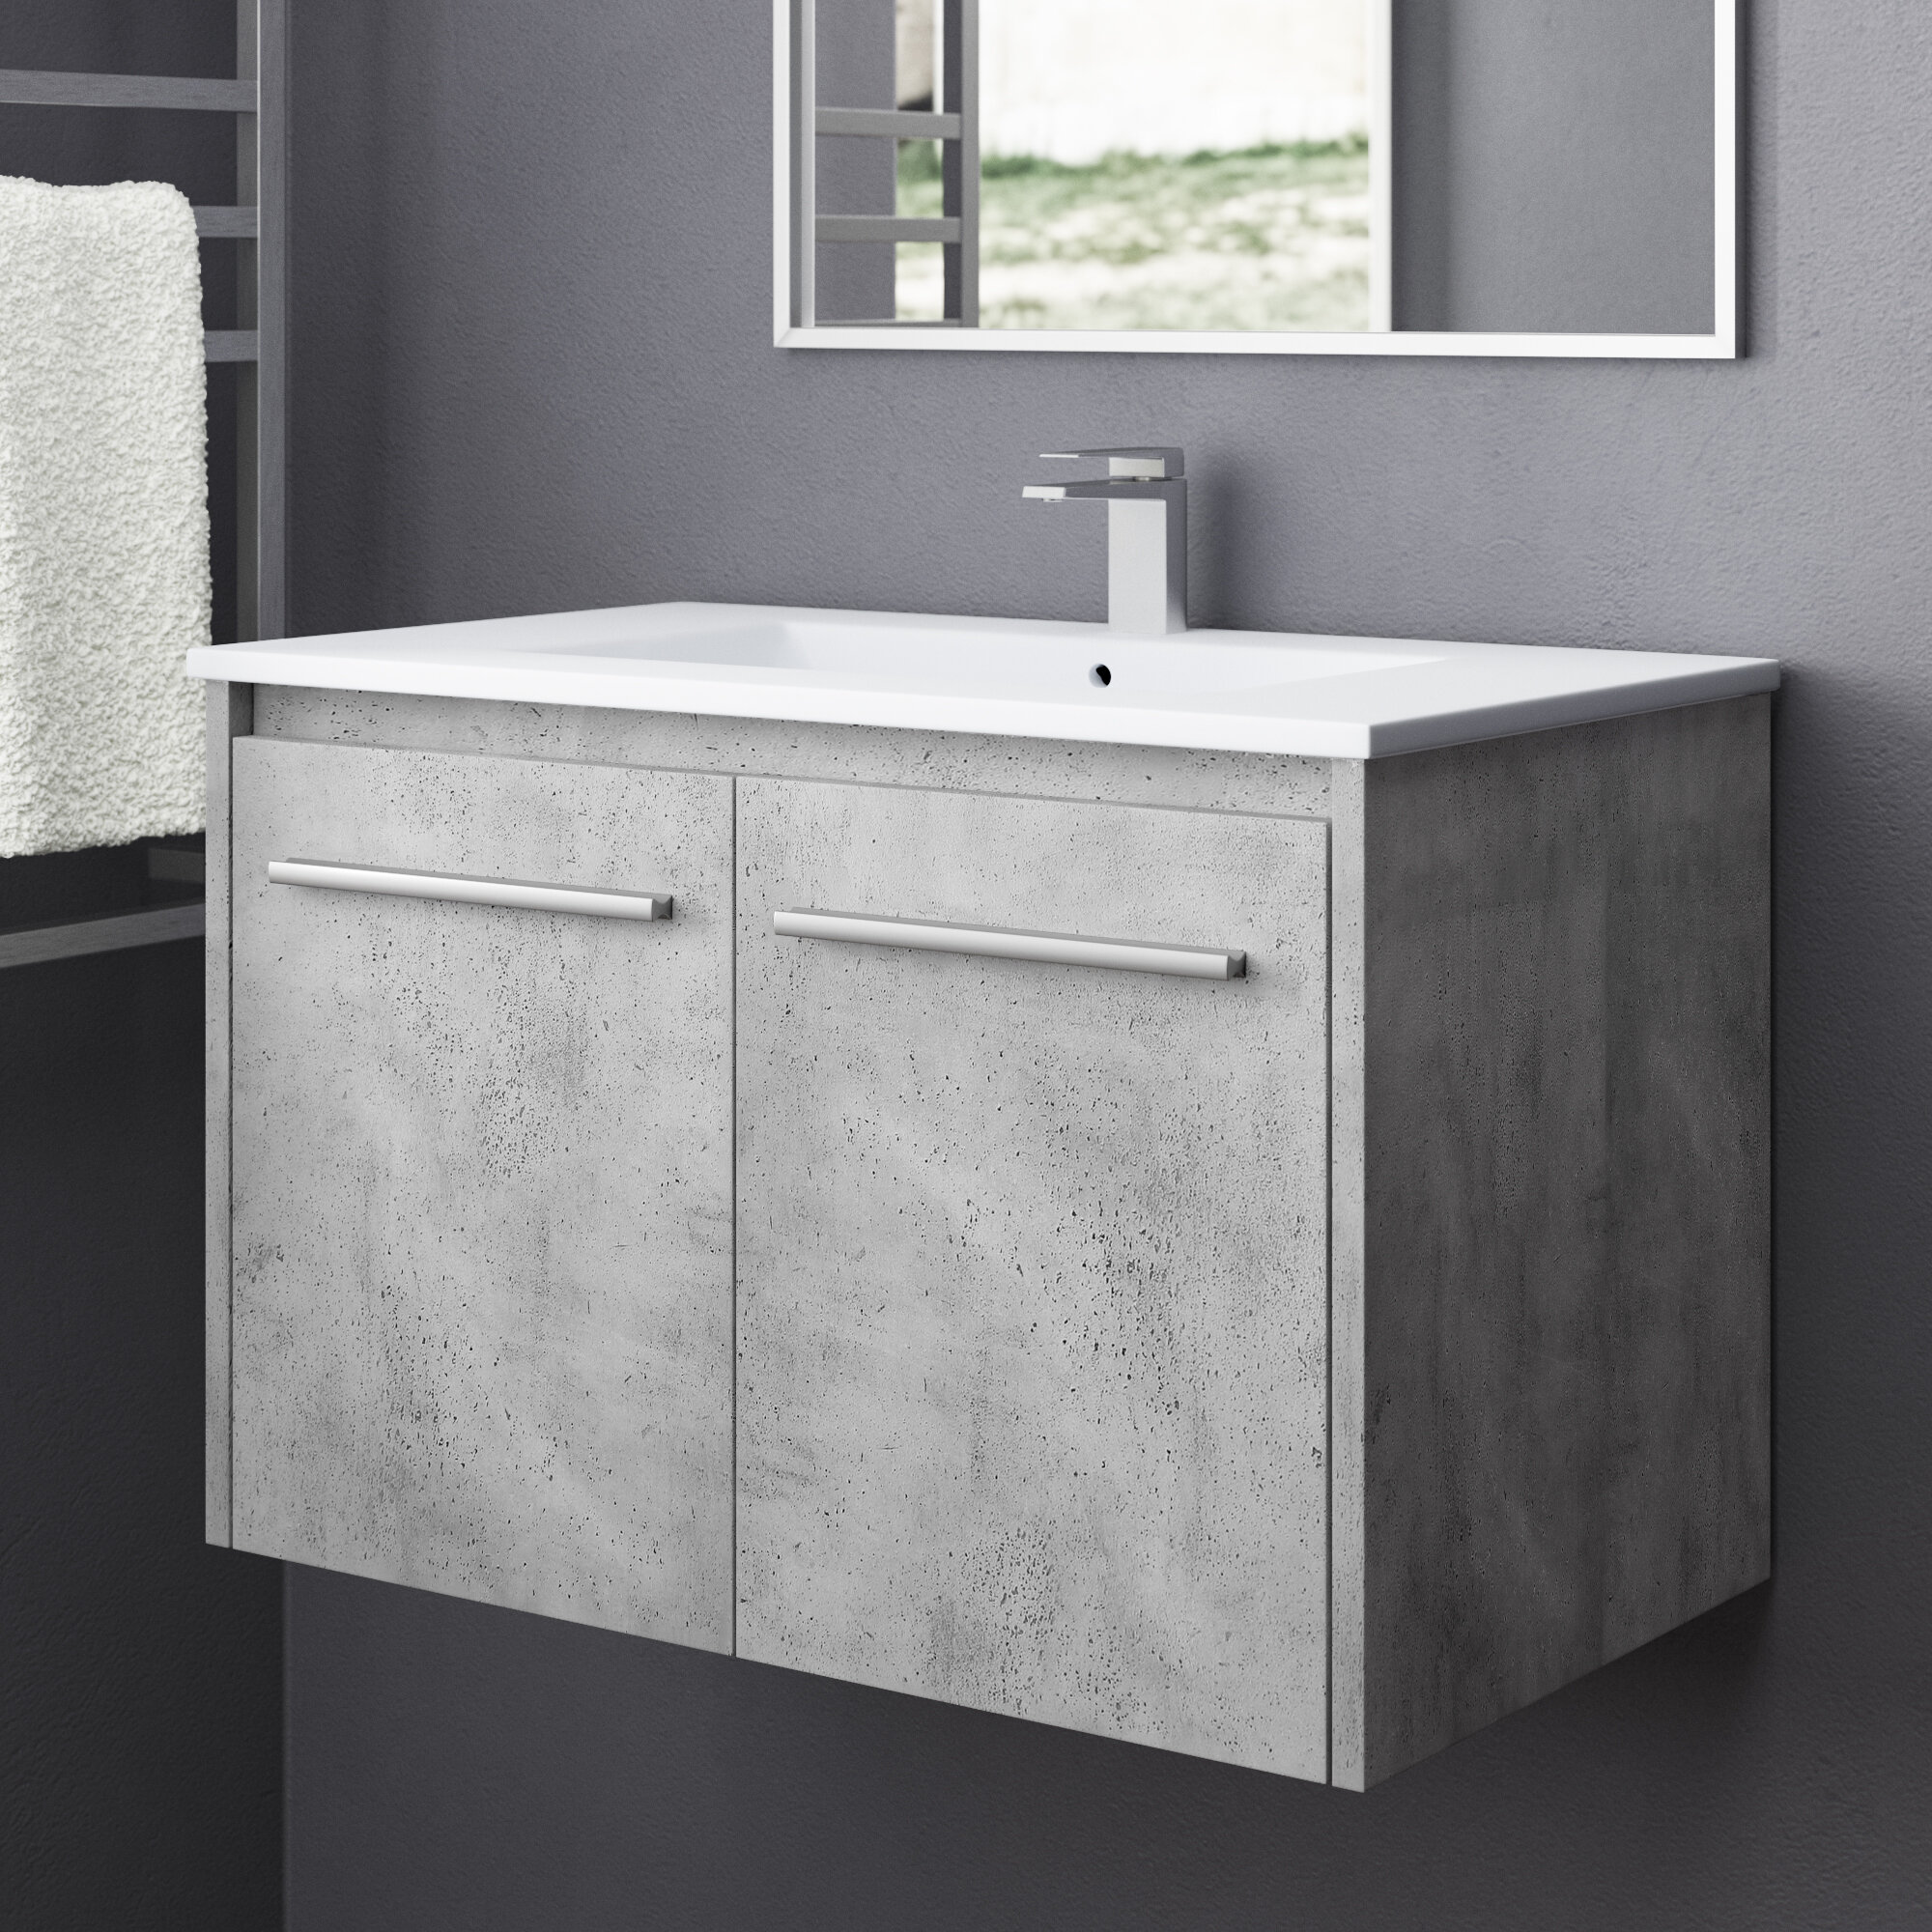 Orren Ellis Lanza 30 Wall Mounted Single Bathroom Vanity Set Reviews Wayfair